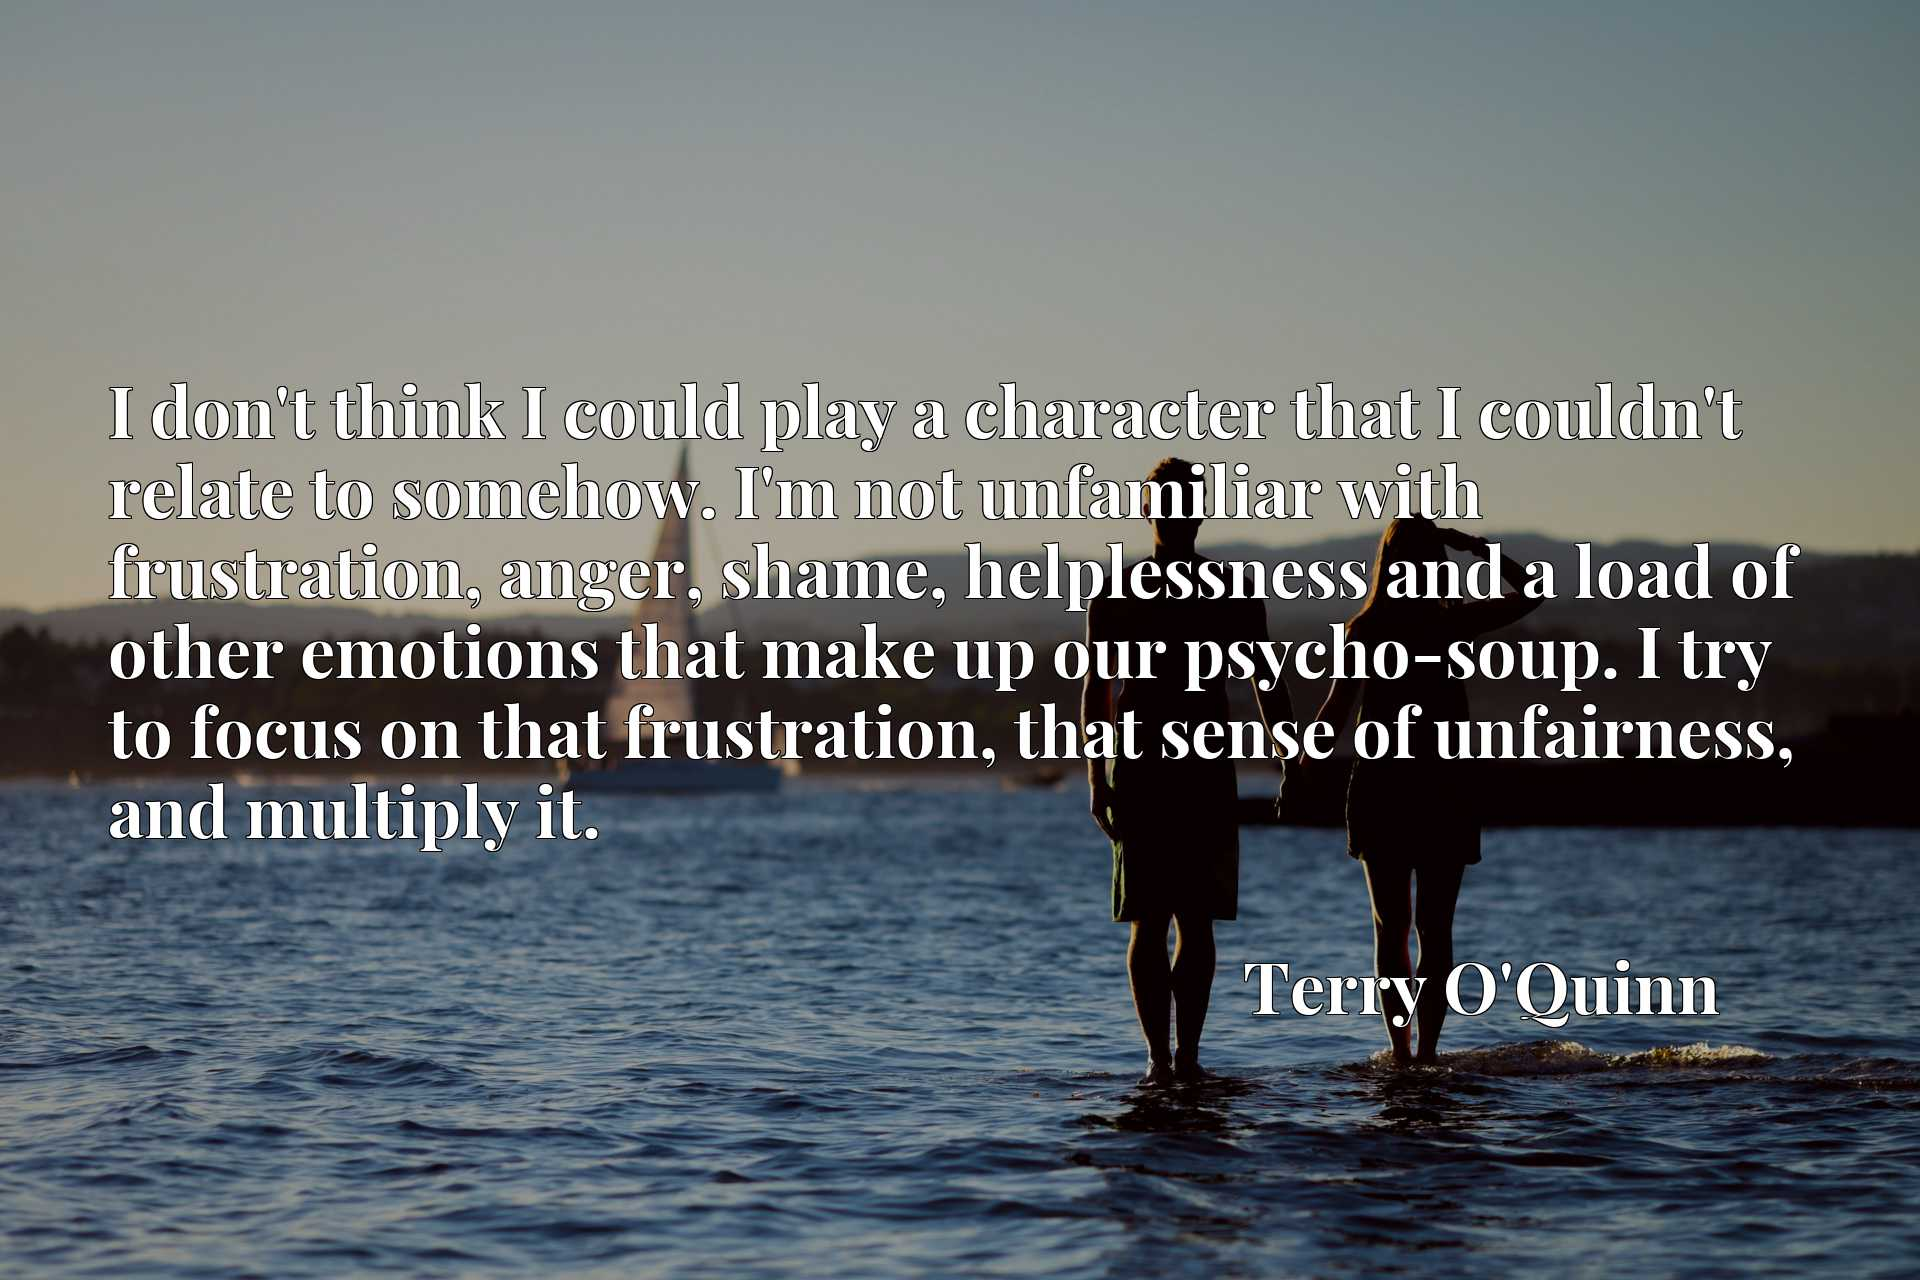 I don't think I could play a character that I couldn't relate to somehow. I'm not unfamiliar with frustration, anger, shame, helplessness and a load of other emotions that make up our psycho-soup. I try to focus on that frustration, that sense of unfairness, and multiply it.